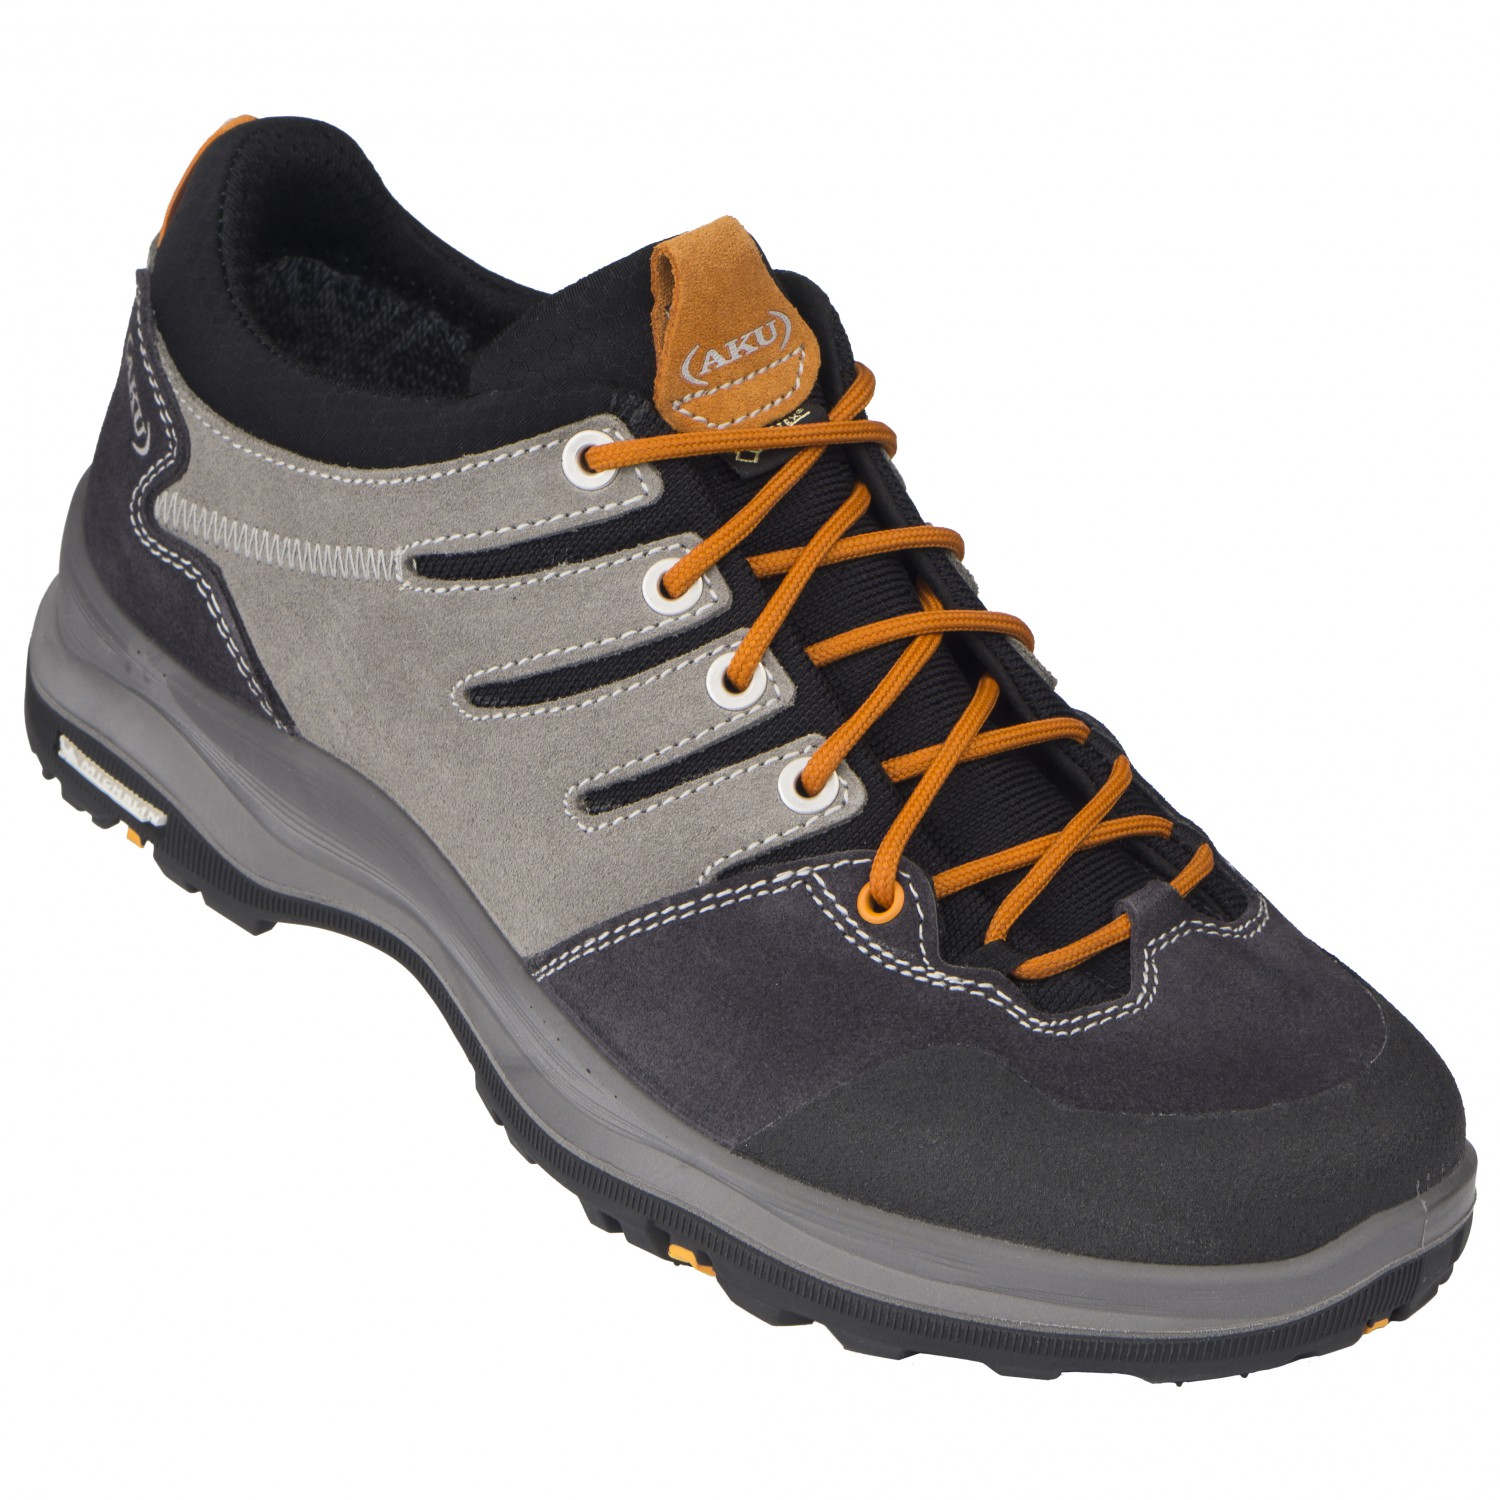 aku-montera-low-gtx-multisport-shoes.jpg